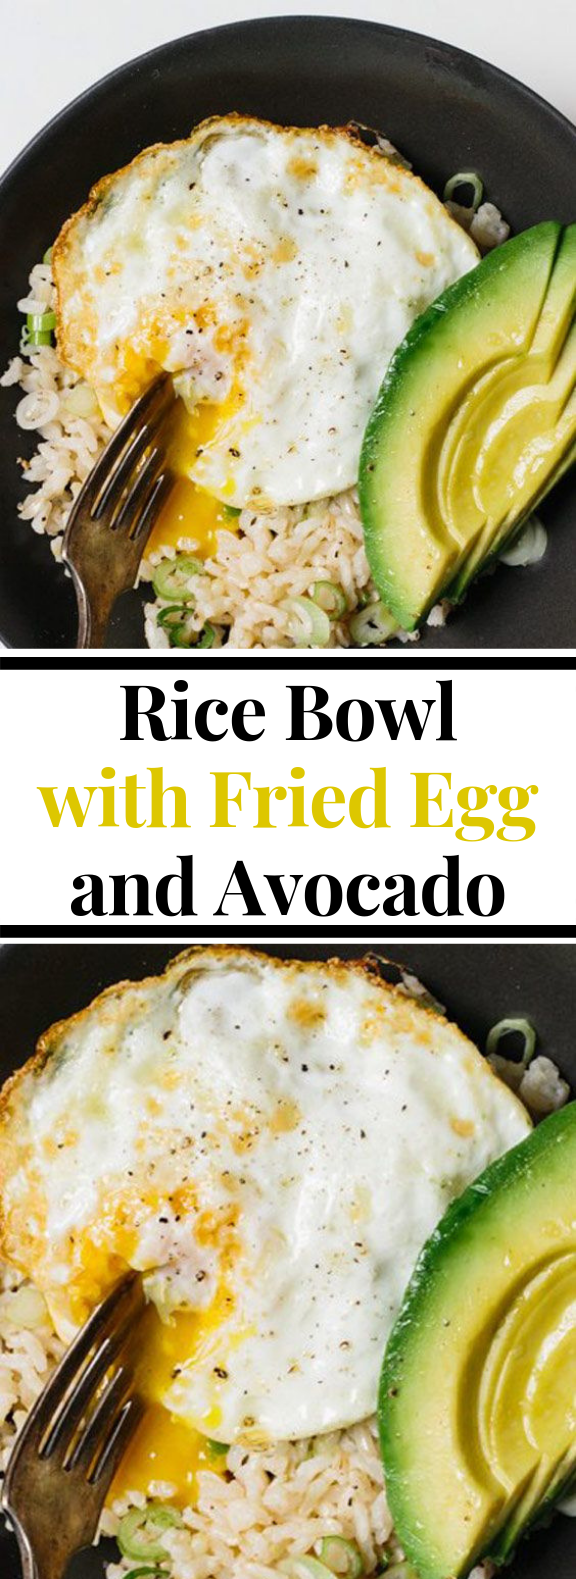 Rice Bowl with Fried Egg and Avocado #healthy #lunch